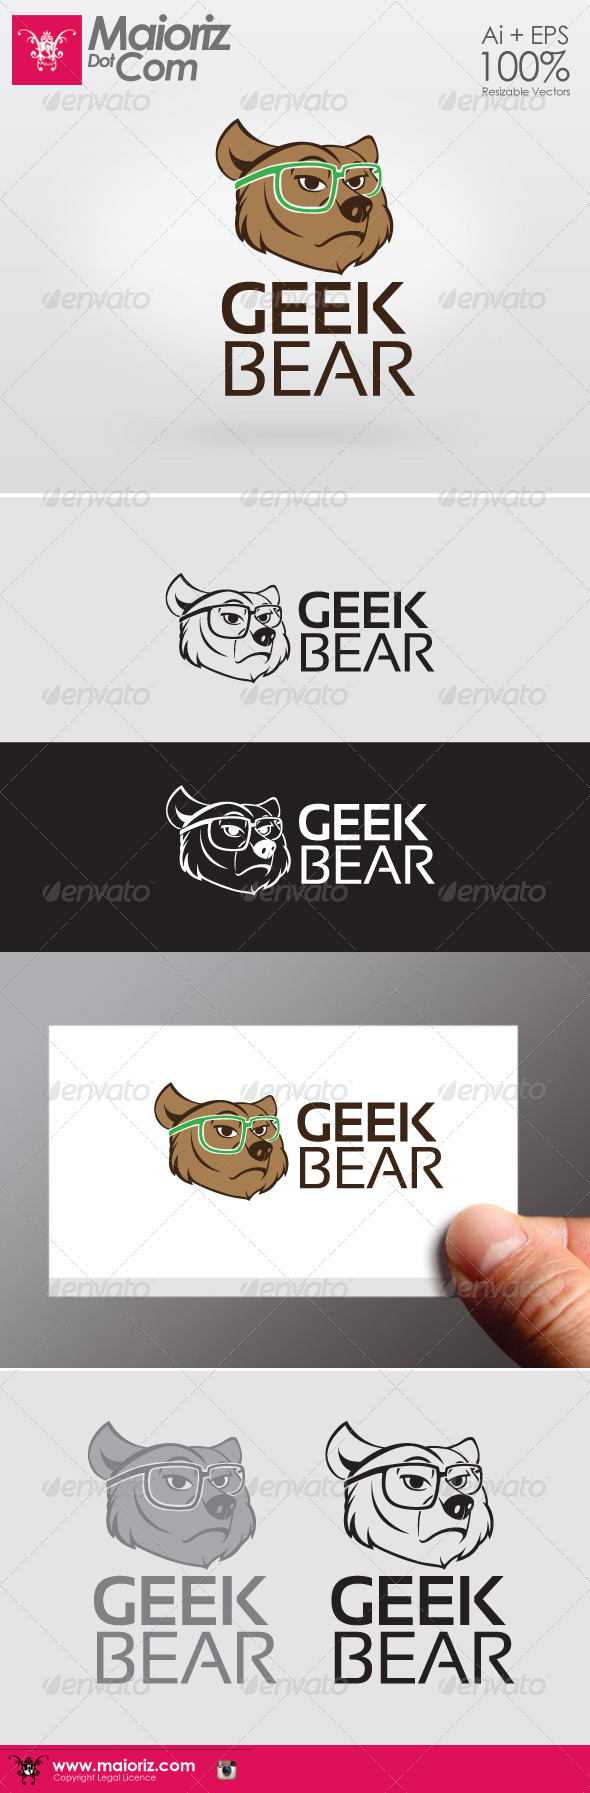 GraphicRiver Geek Bear Logo 6406878